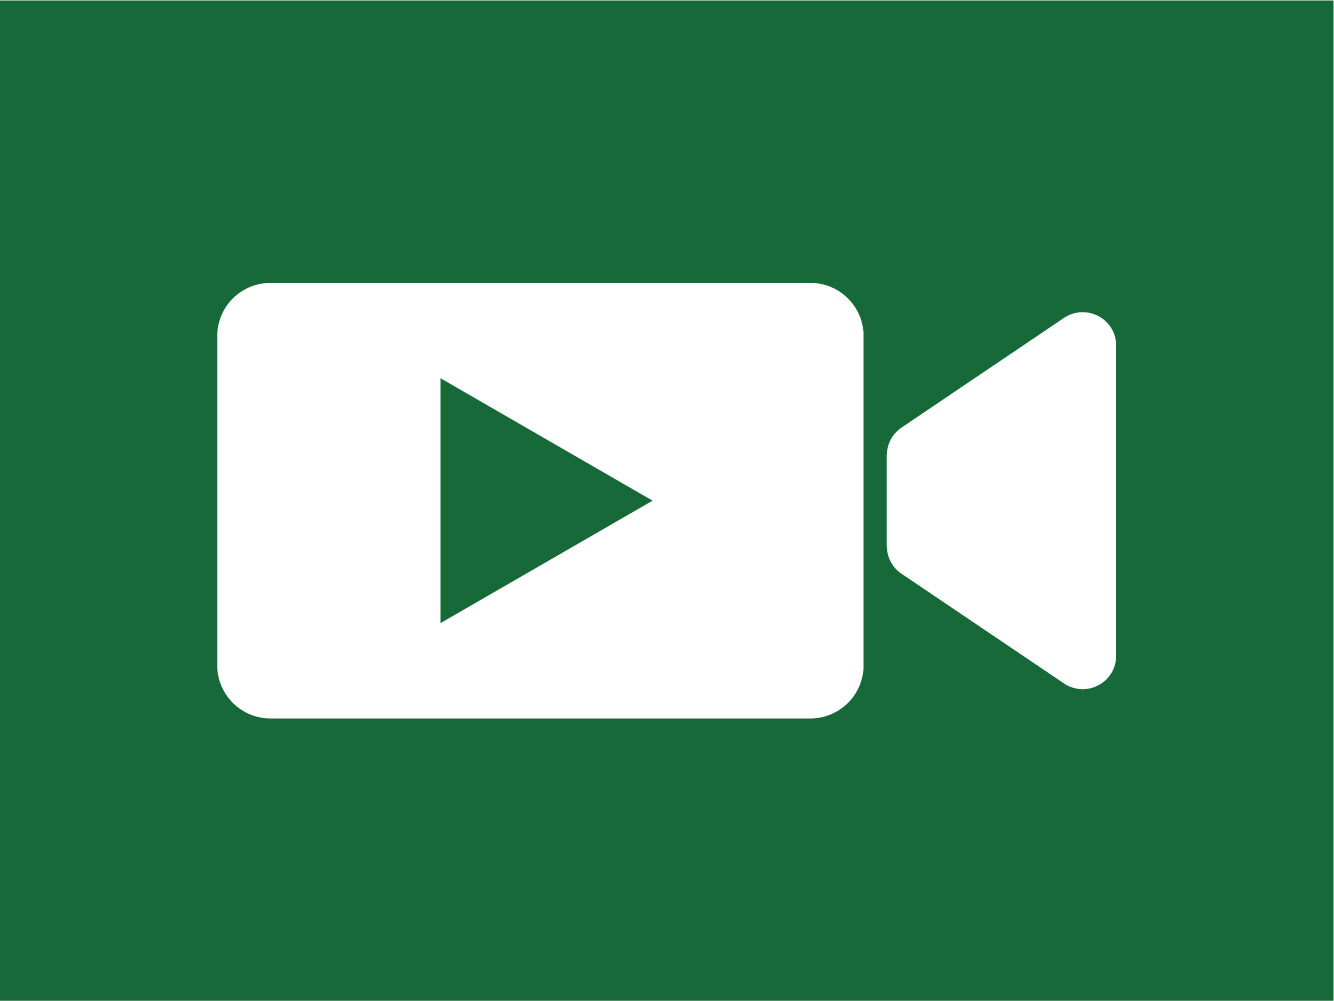 White video icon on green background